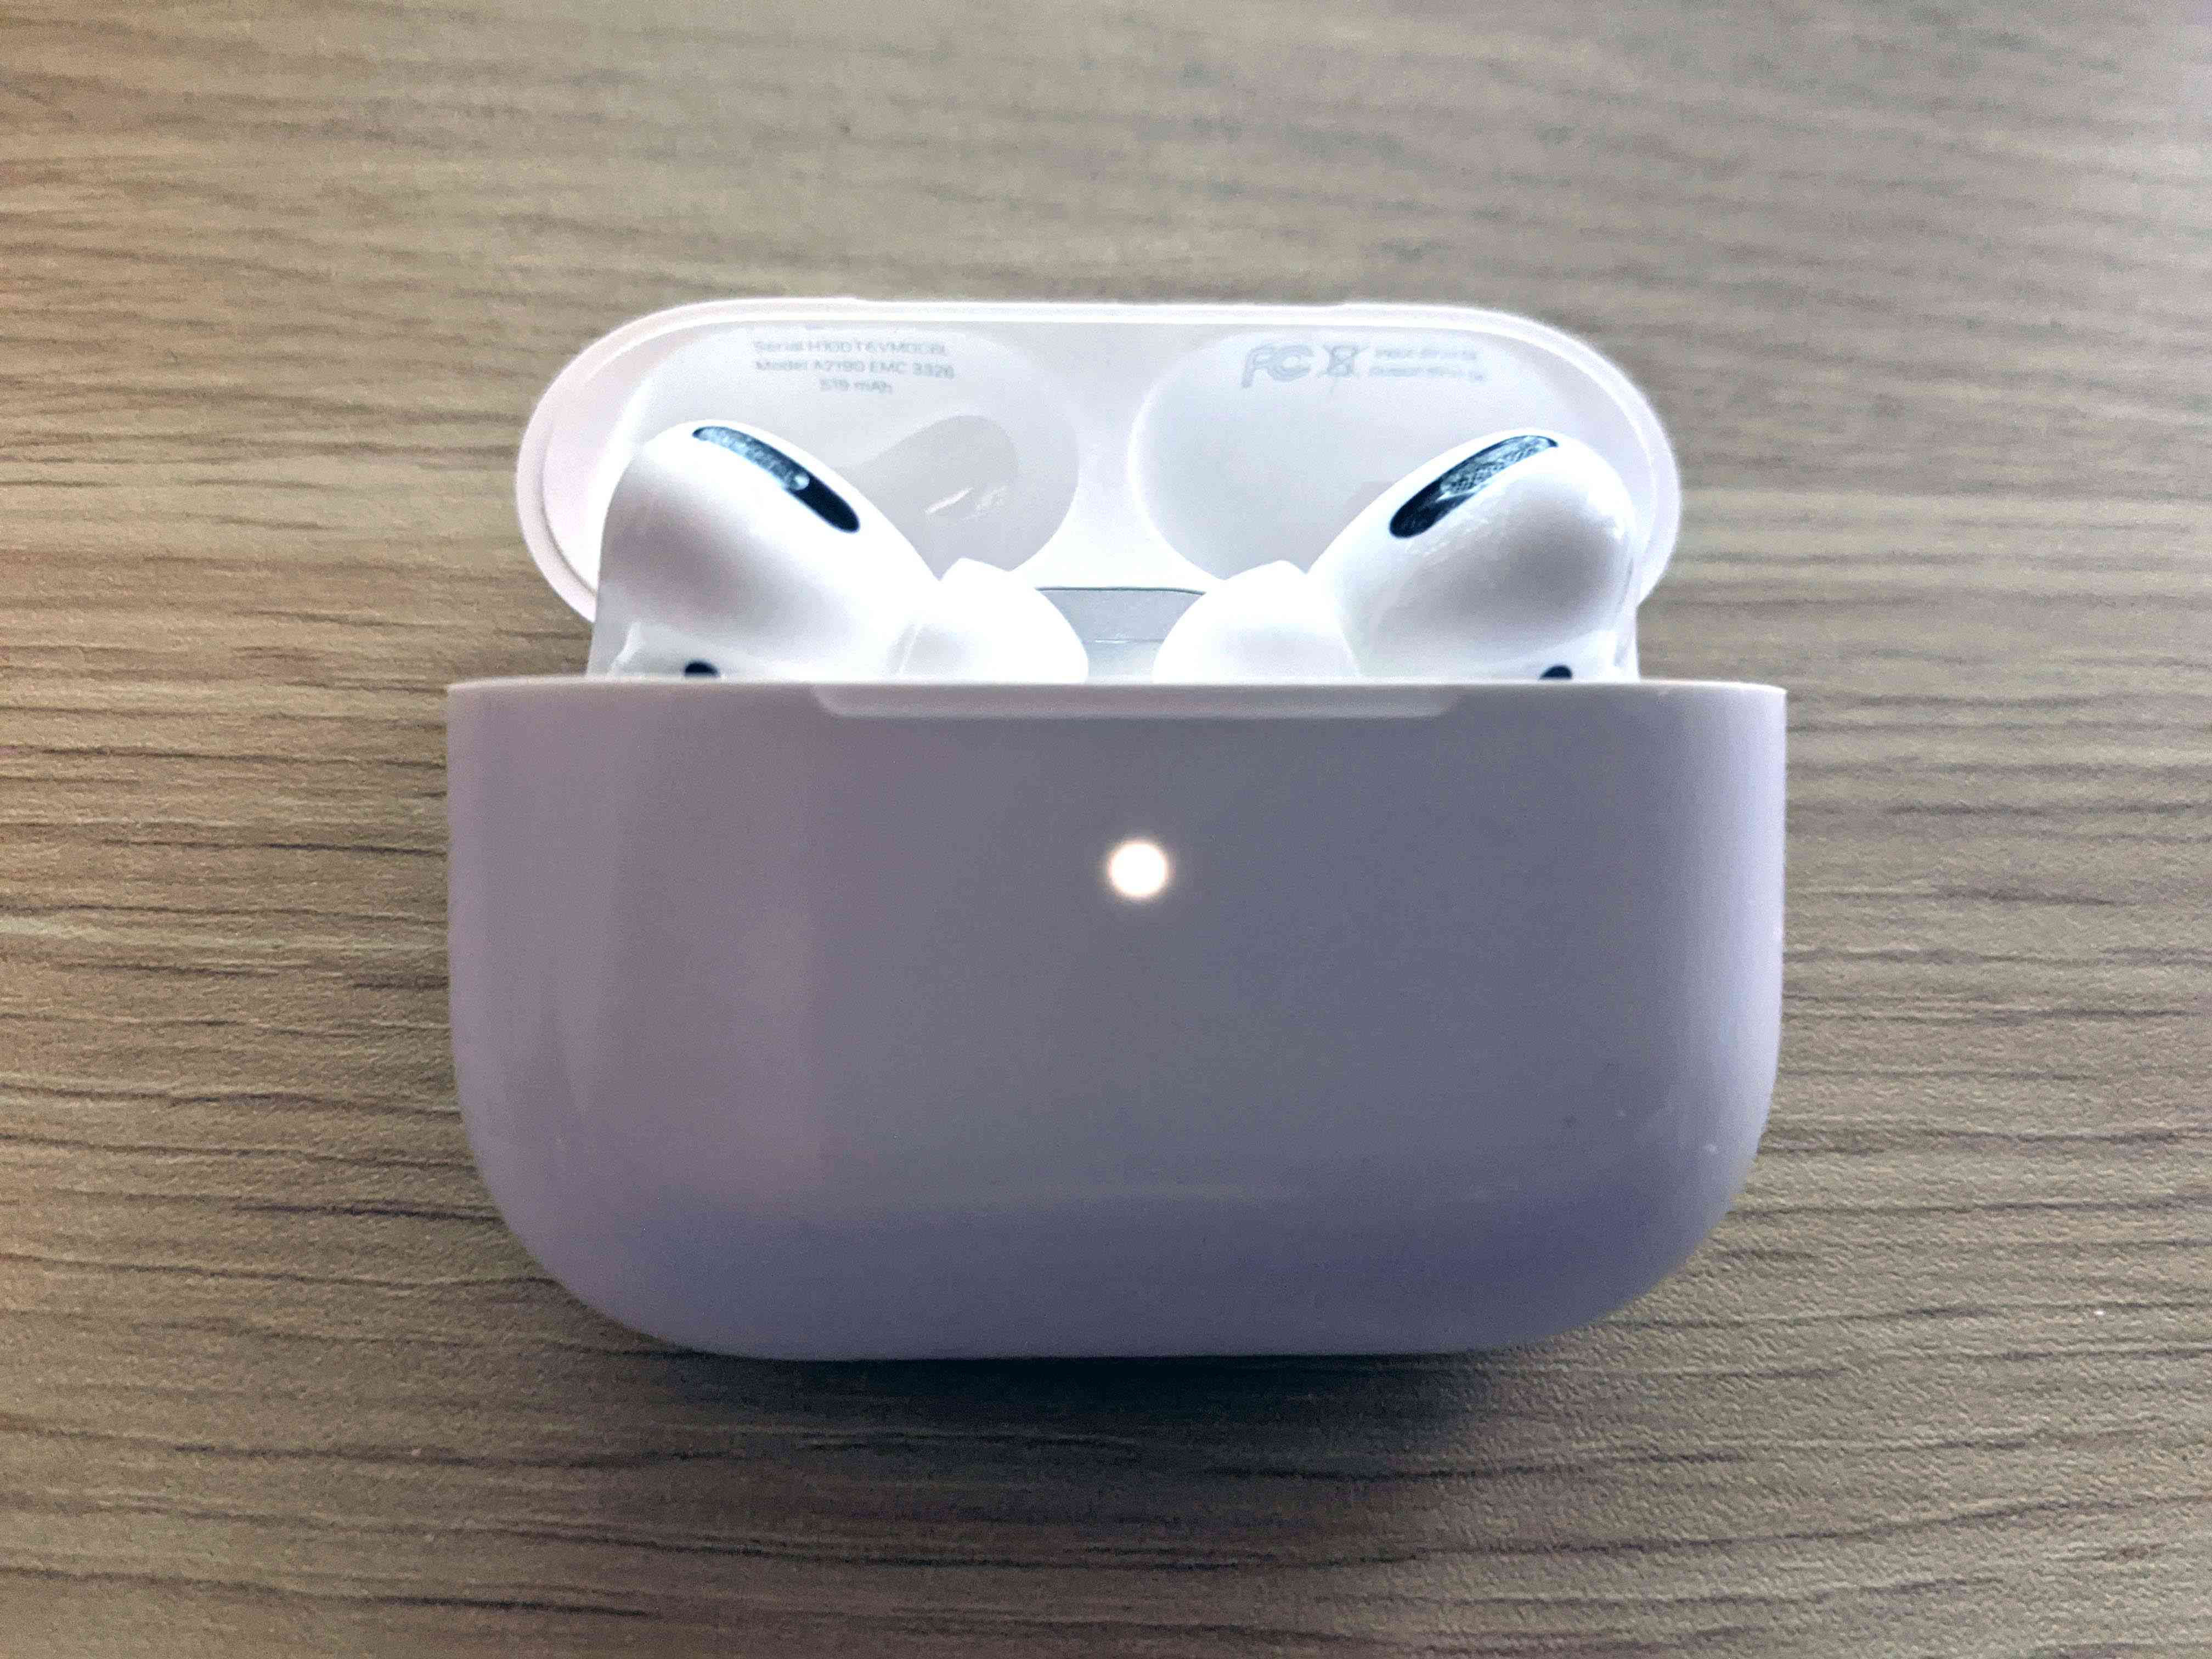 The flashing white light on an AirPods case indicating it's ready to pair.